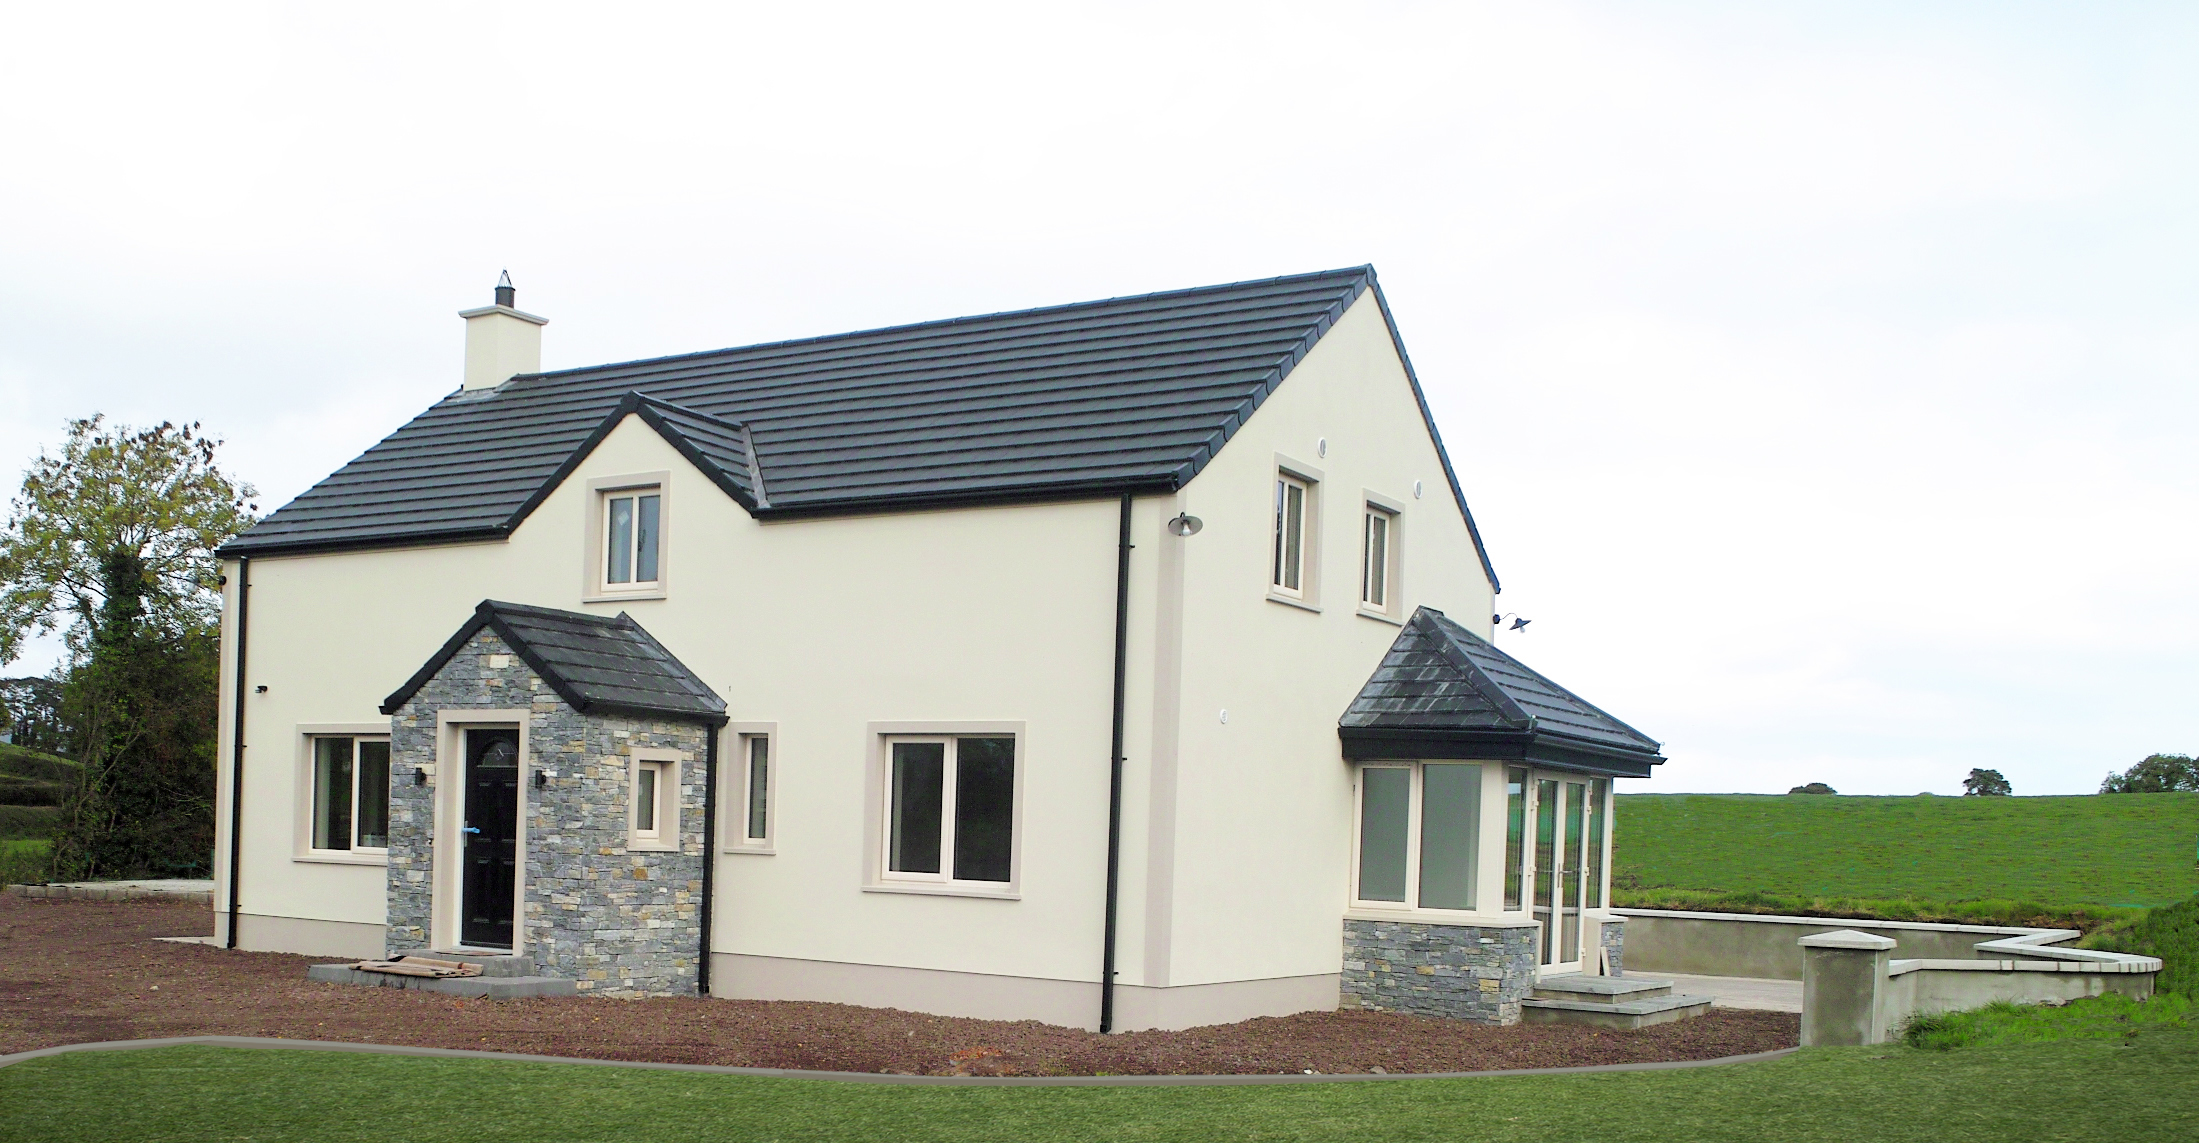 Eco Homes In Northern Ireland - Low Energy Low Cost ecohouses